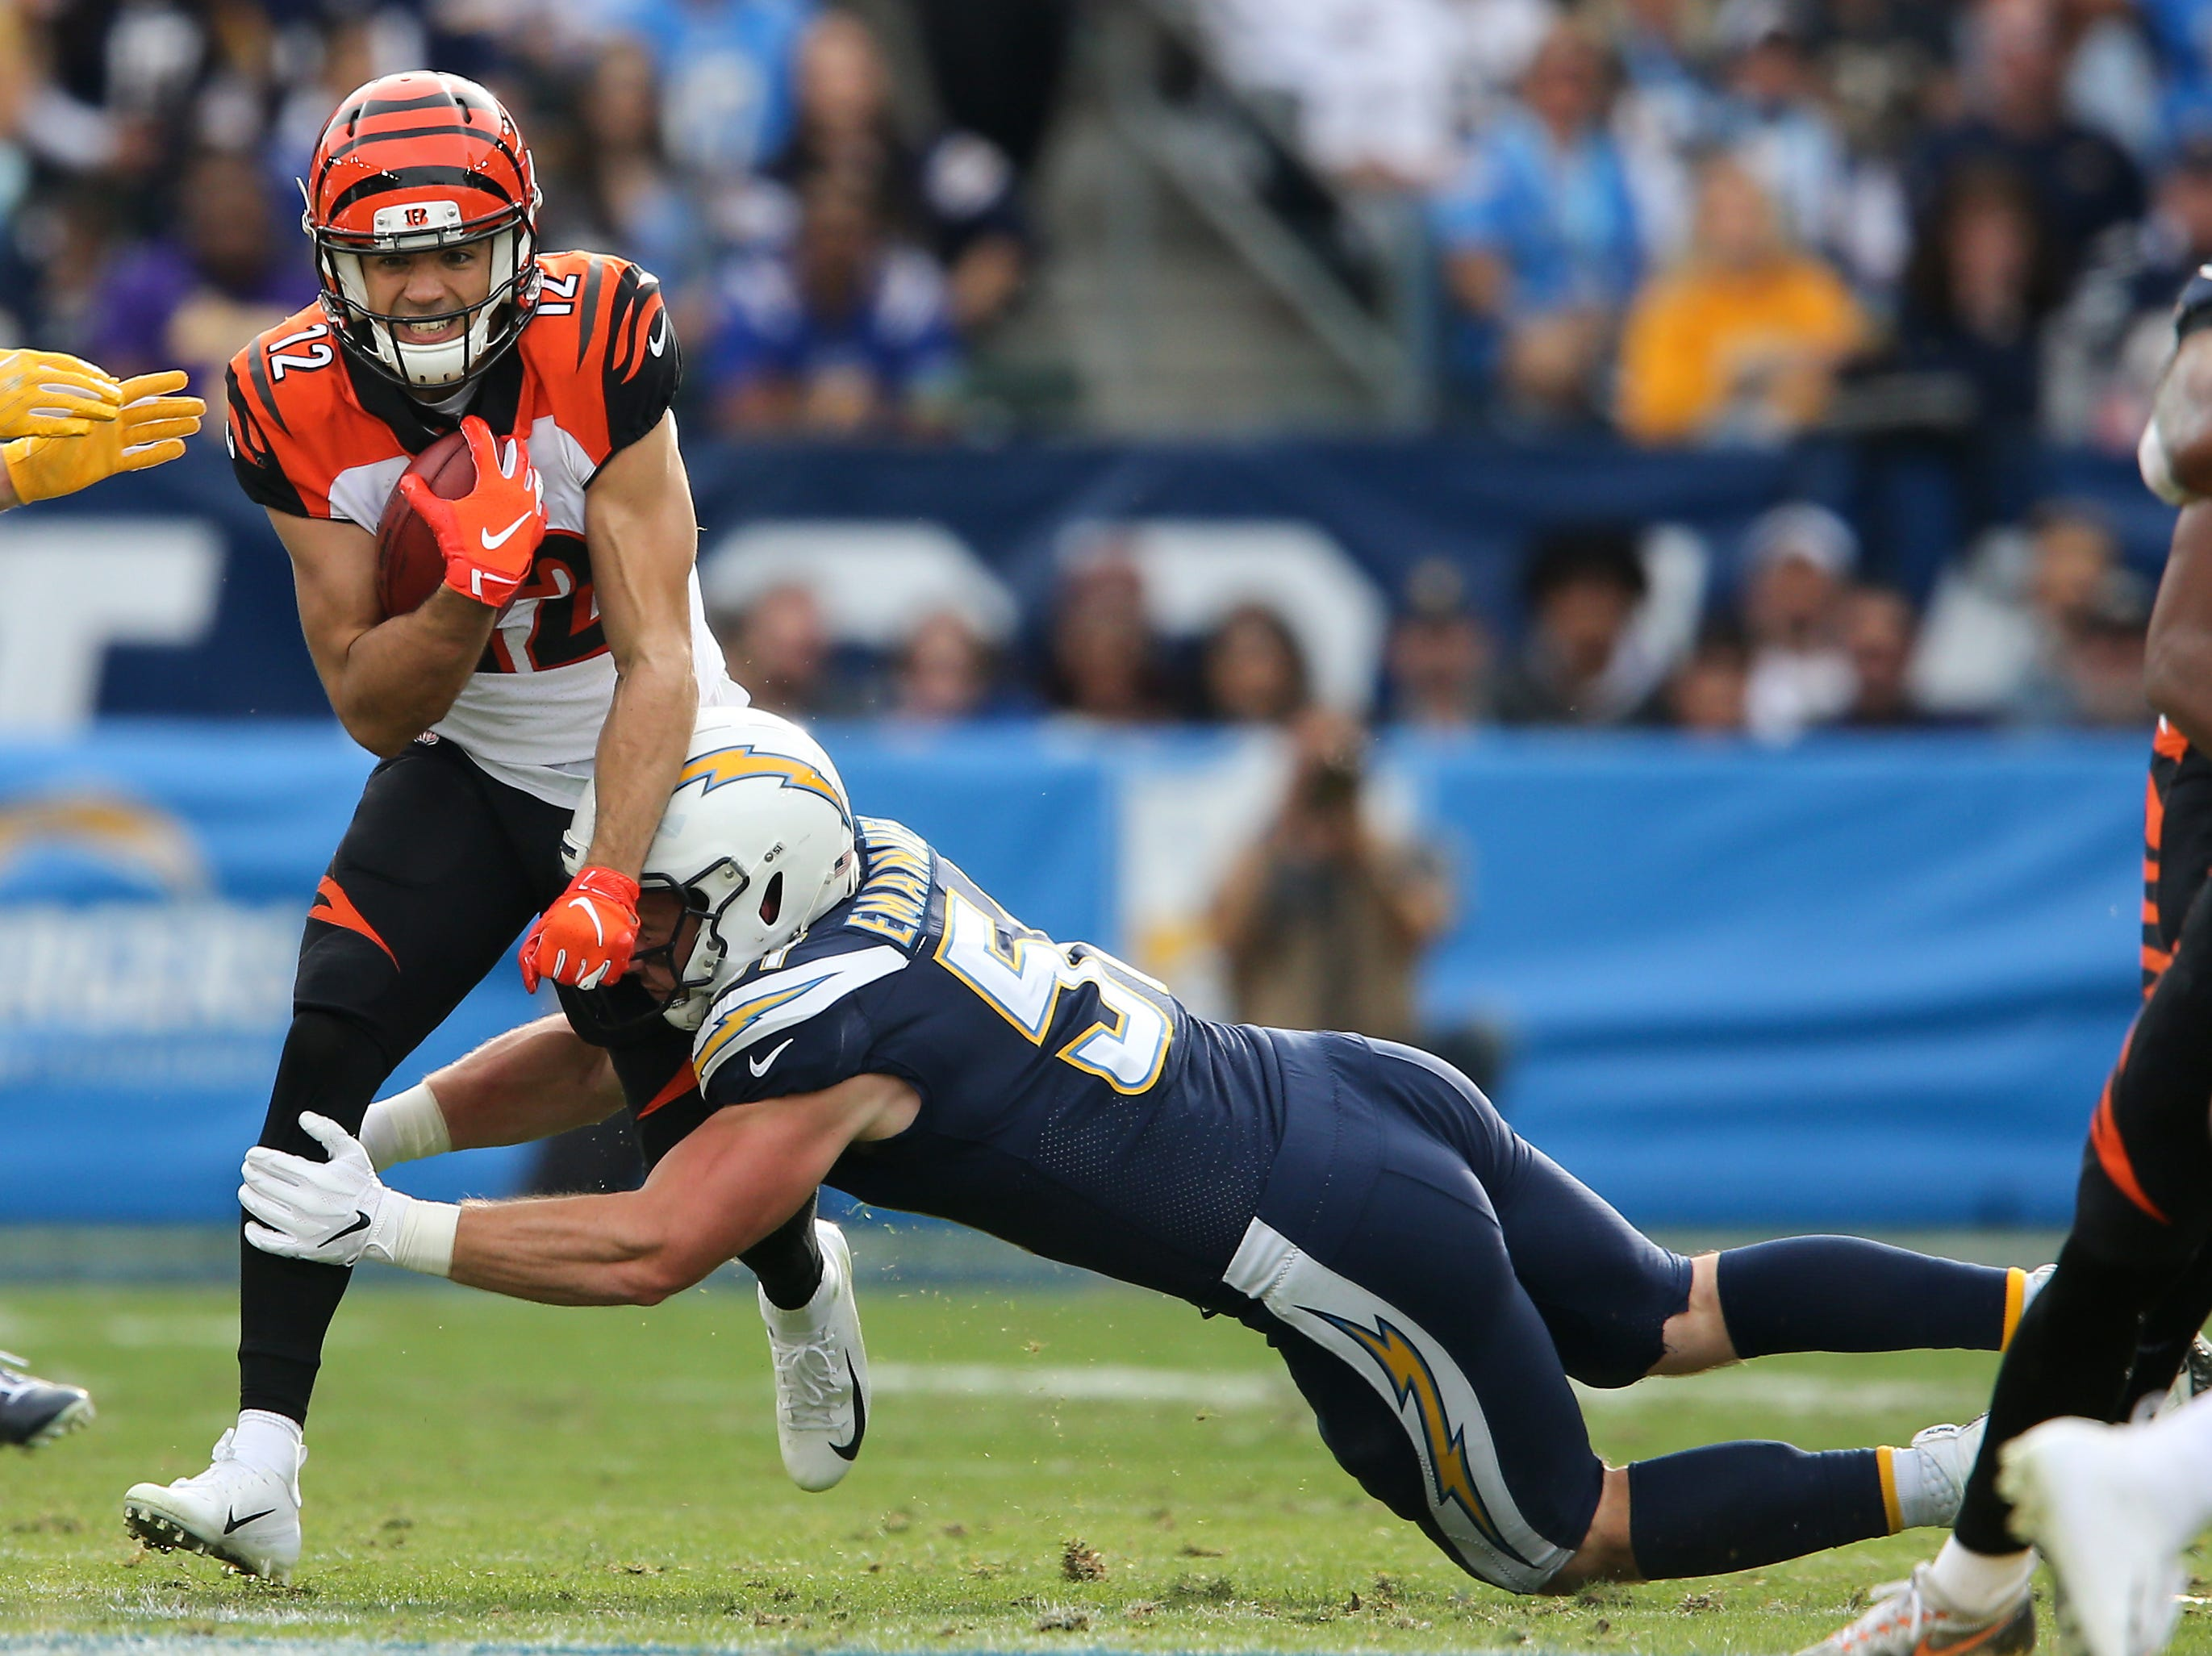 Cincinnati Bengals wide receiver Alex Erickson (12) returns a punt in the second quarter of a Week 14 NFL football game against the Los Angeles Chargers, Sunday, Dec. 9, 2018, at StubHub Center in Carson, California.